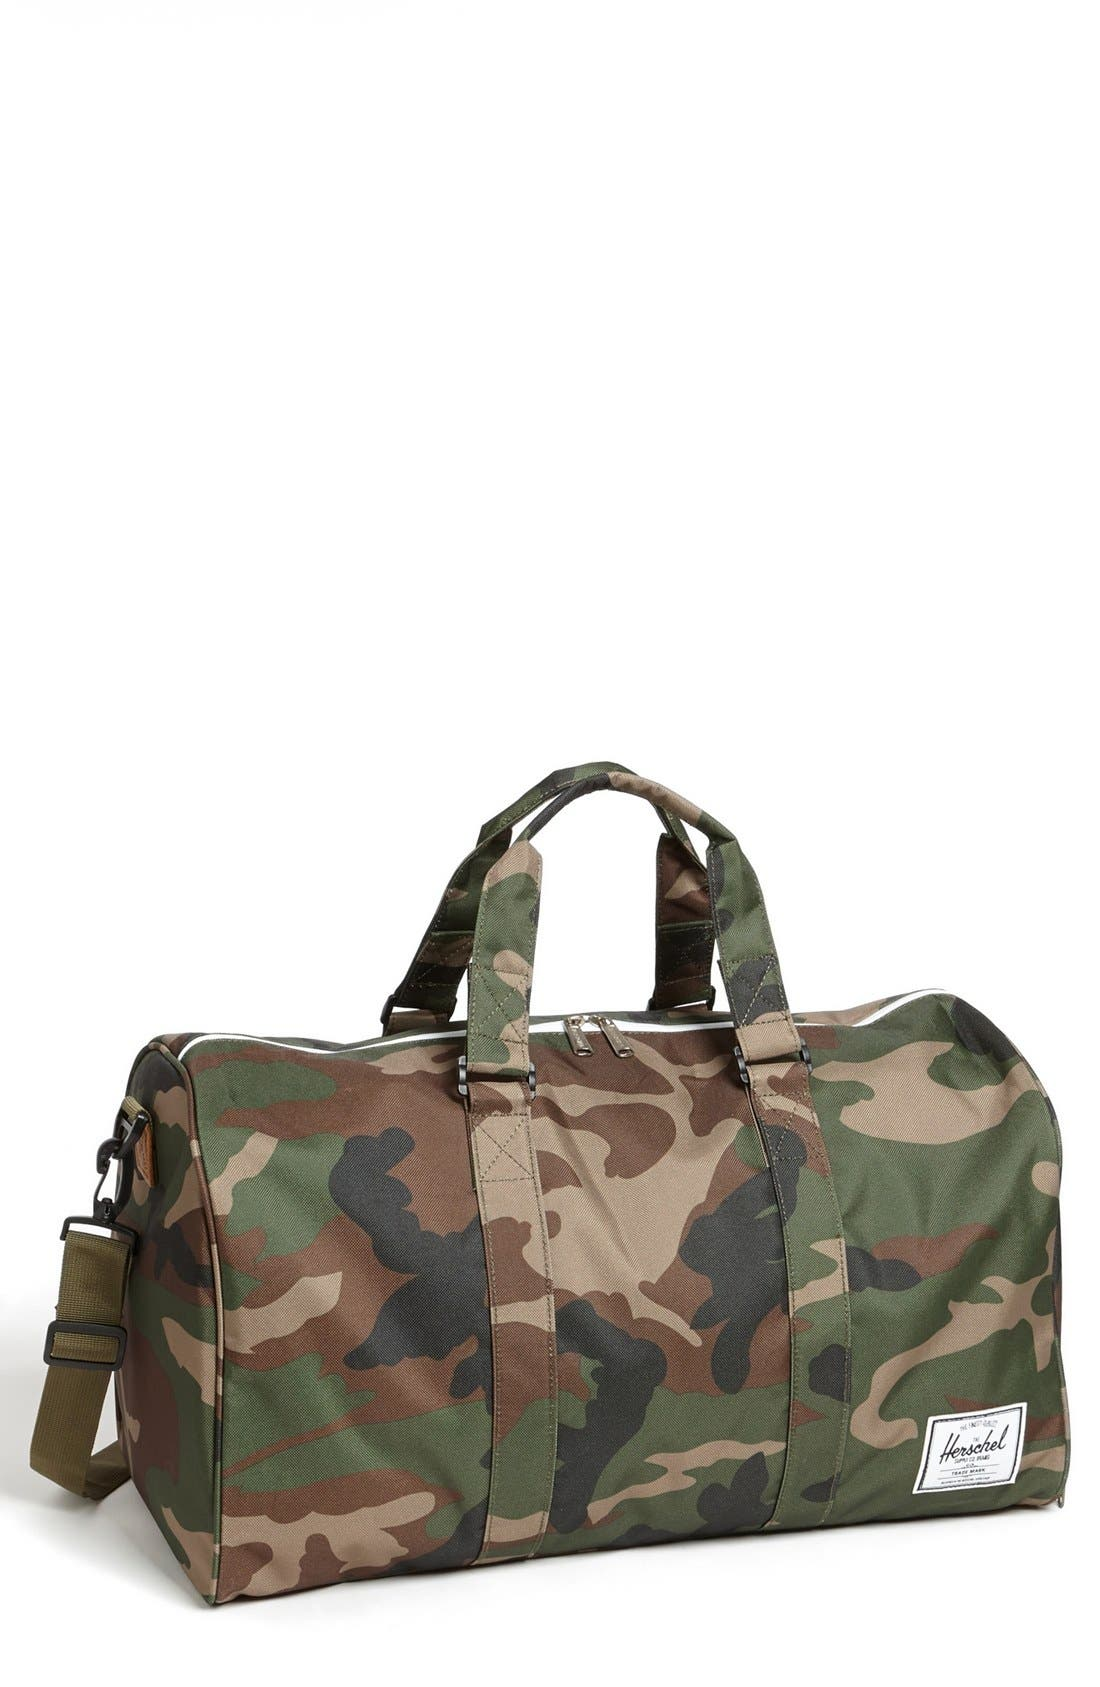 'Novel' Duffel Bag,                             Main thumbnail 1, color,                             Woodland Camo